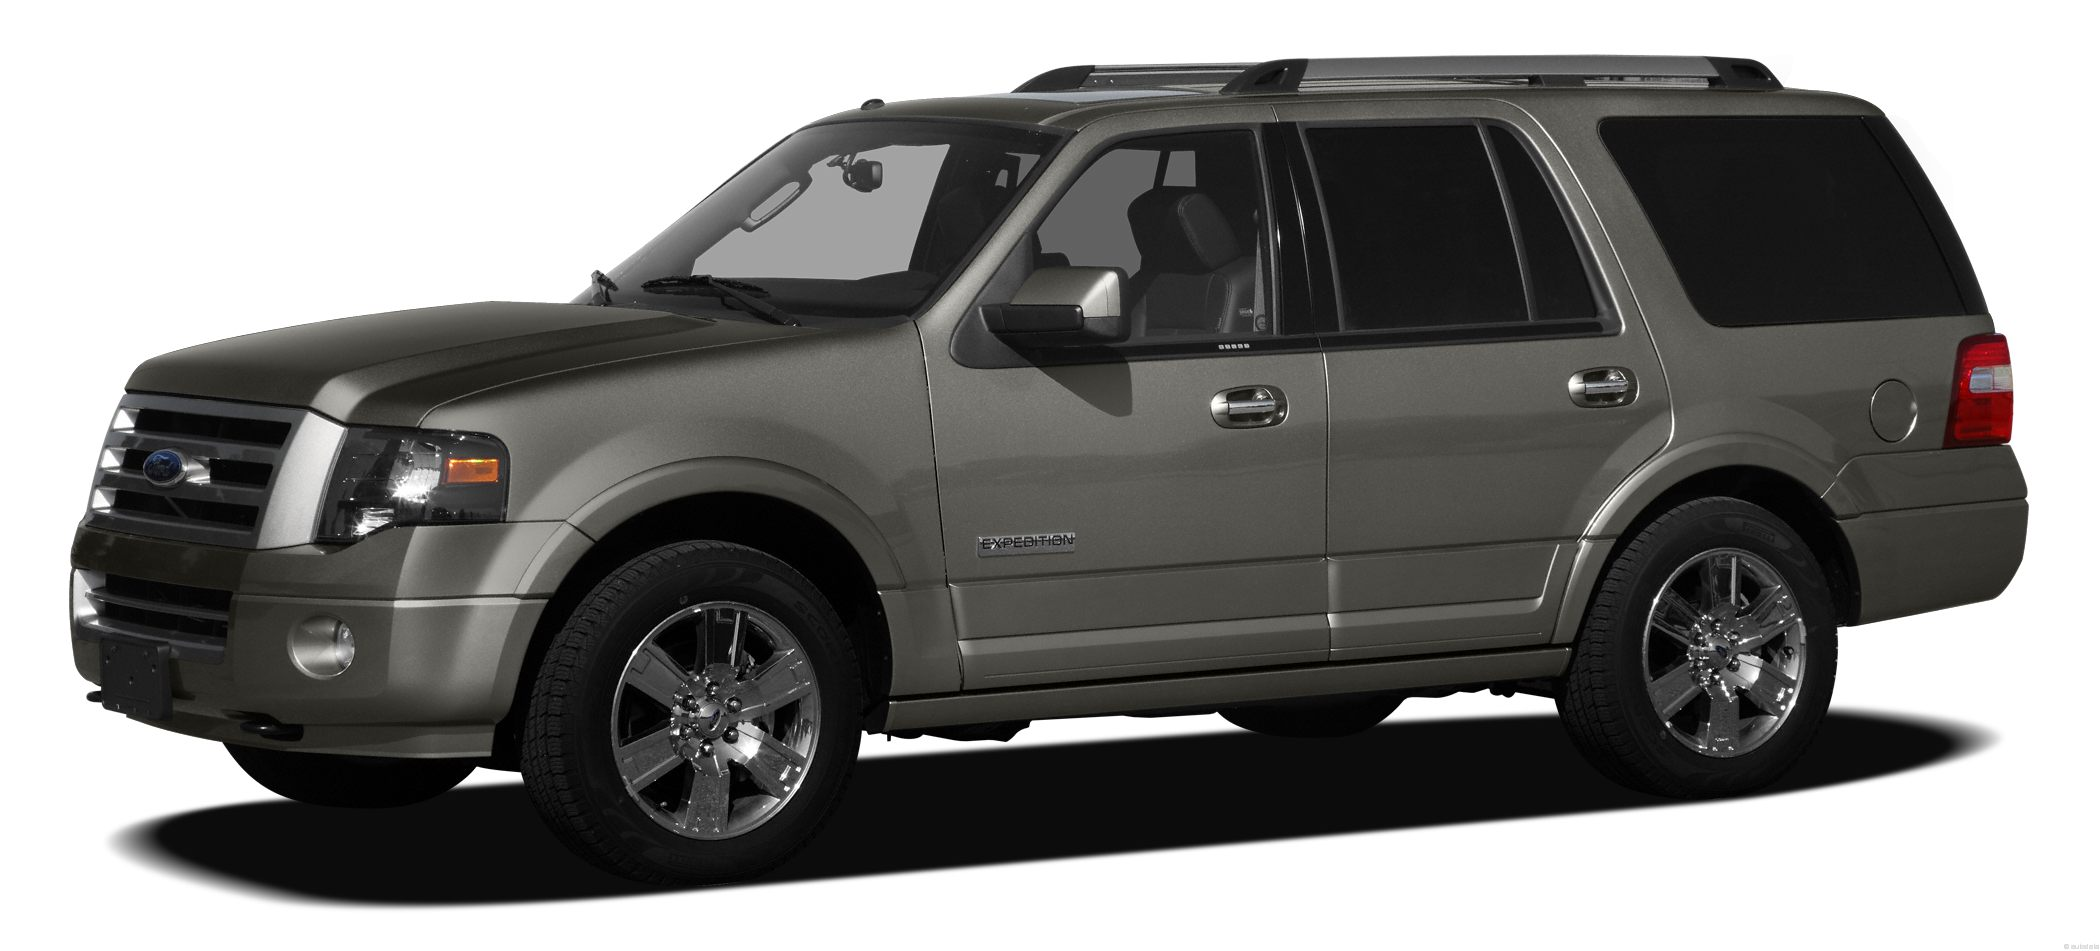 2014 Ford Expedition #13